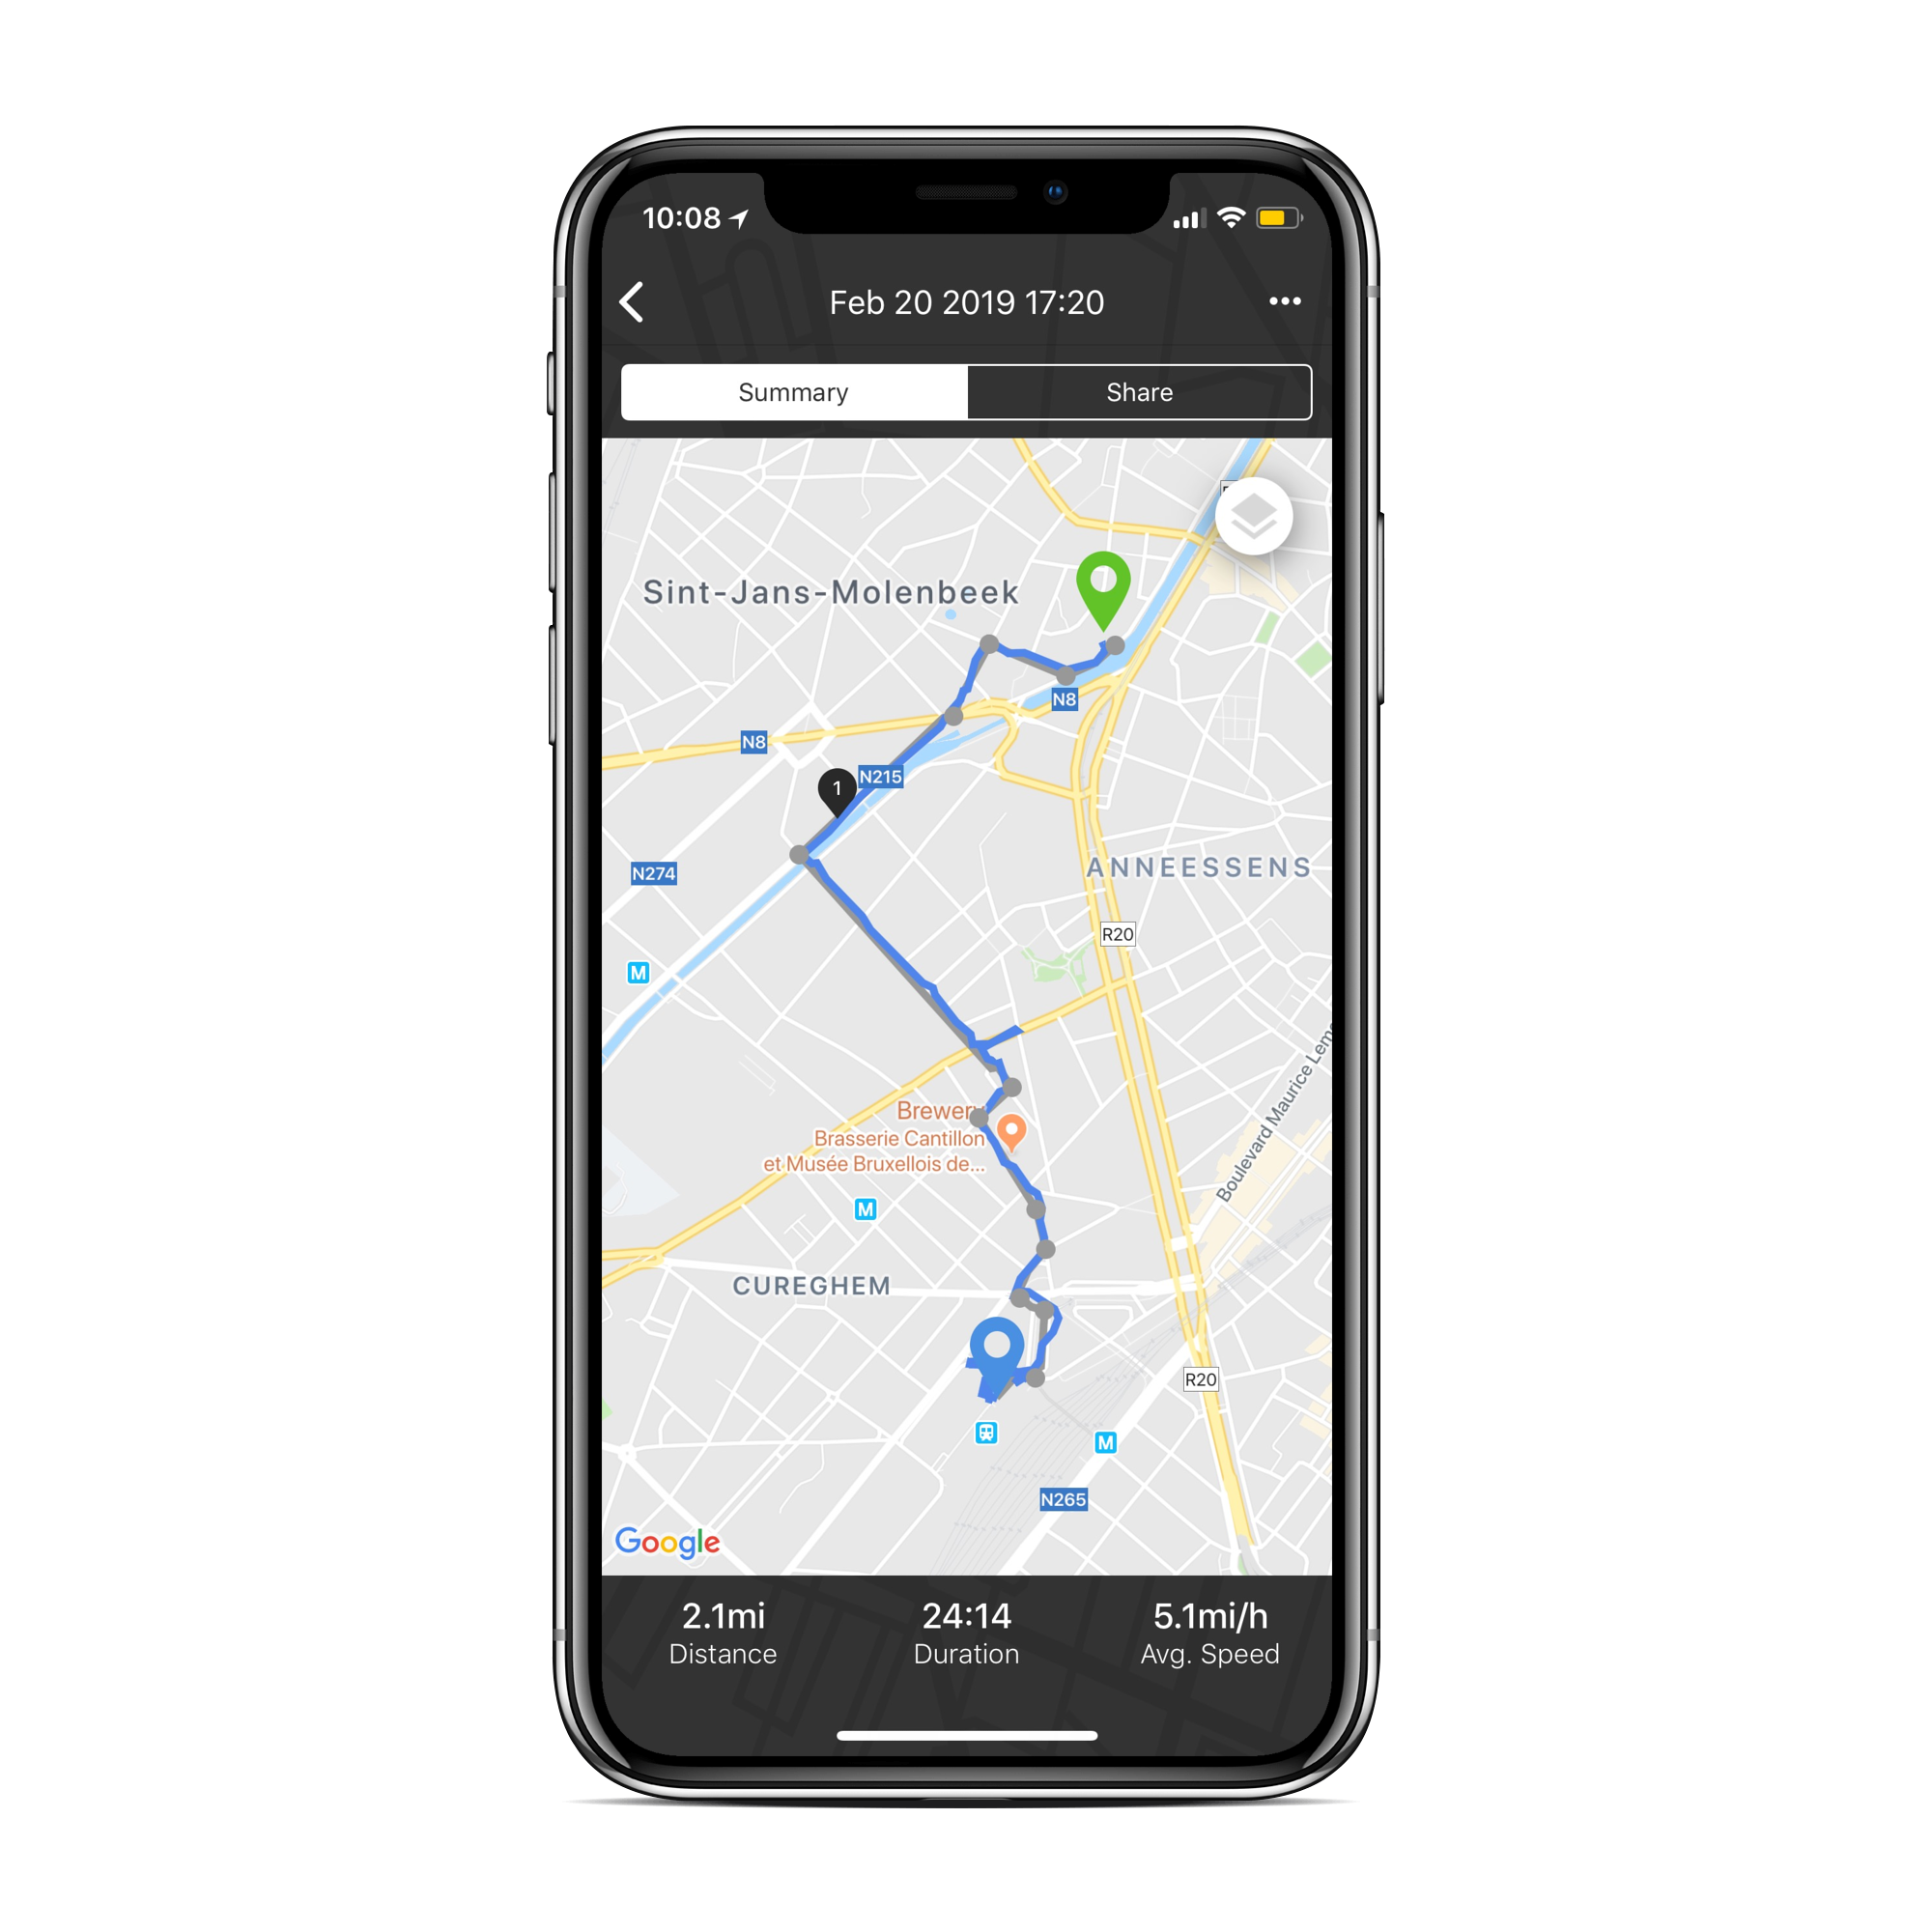 Screen showing a route that has been ridden on the Beeline app